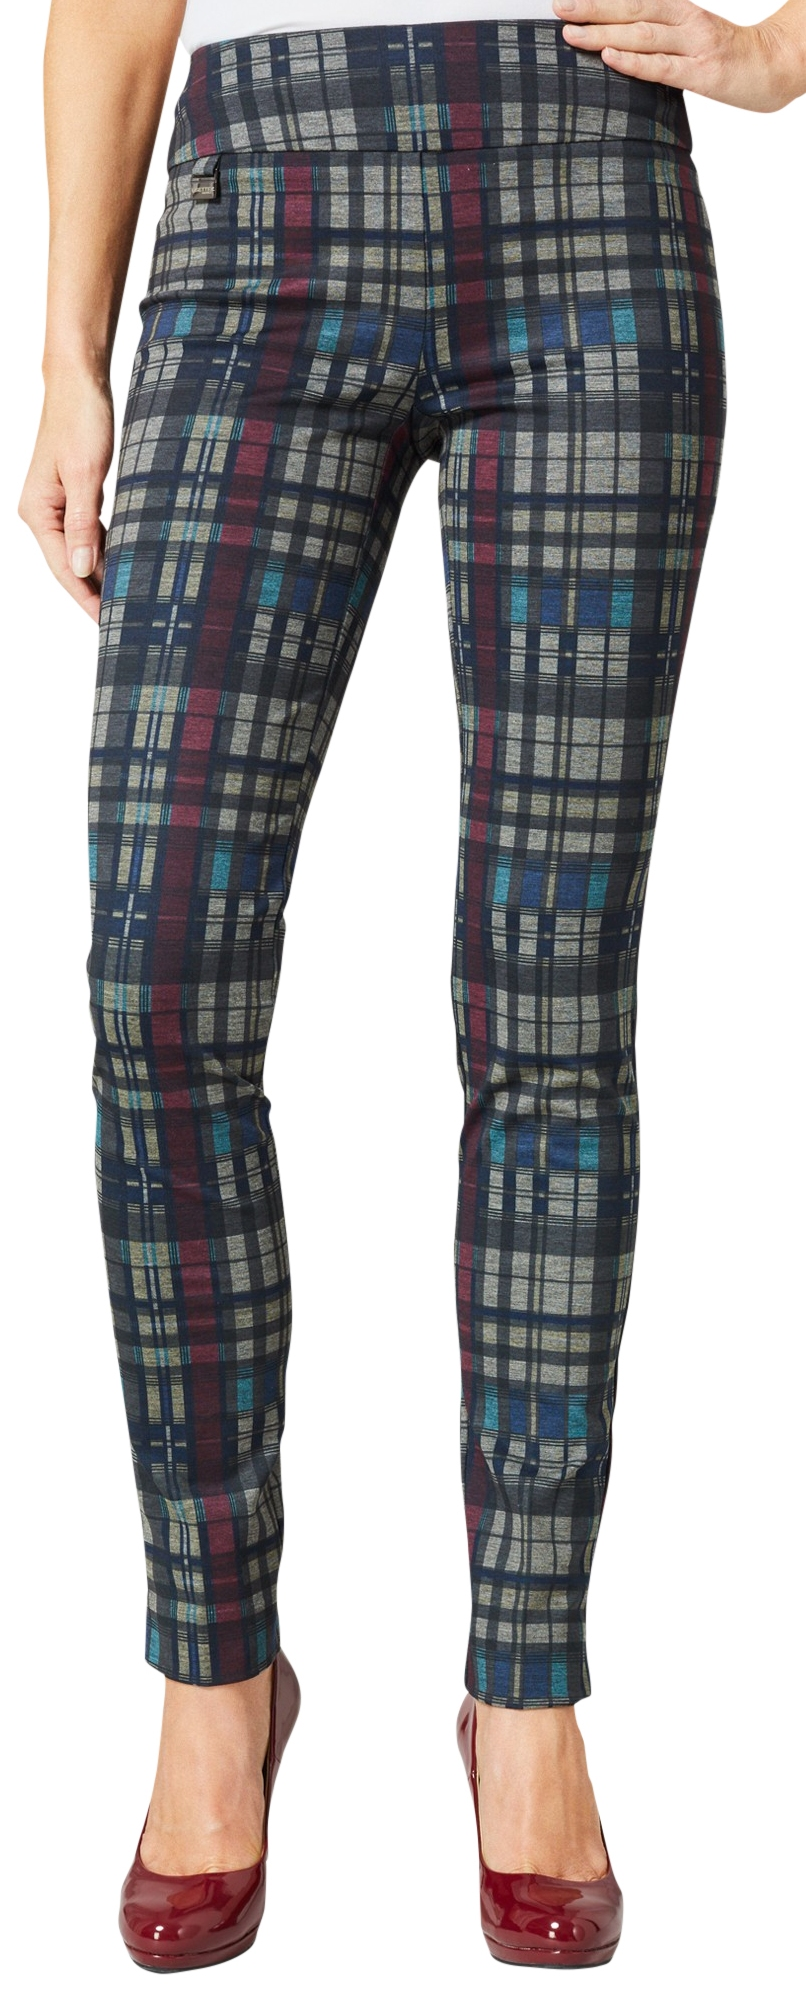 Lisette L. Skinny Legs Pants Style 9105 Highland Plaid Print Color Multi Tone